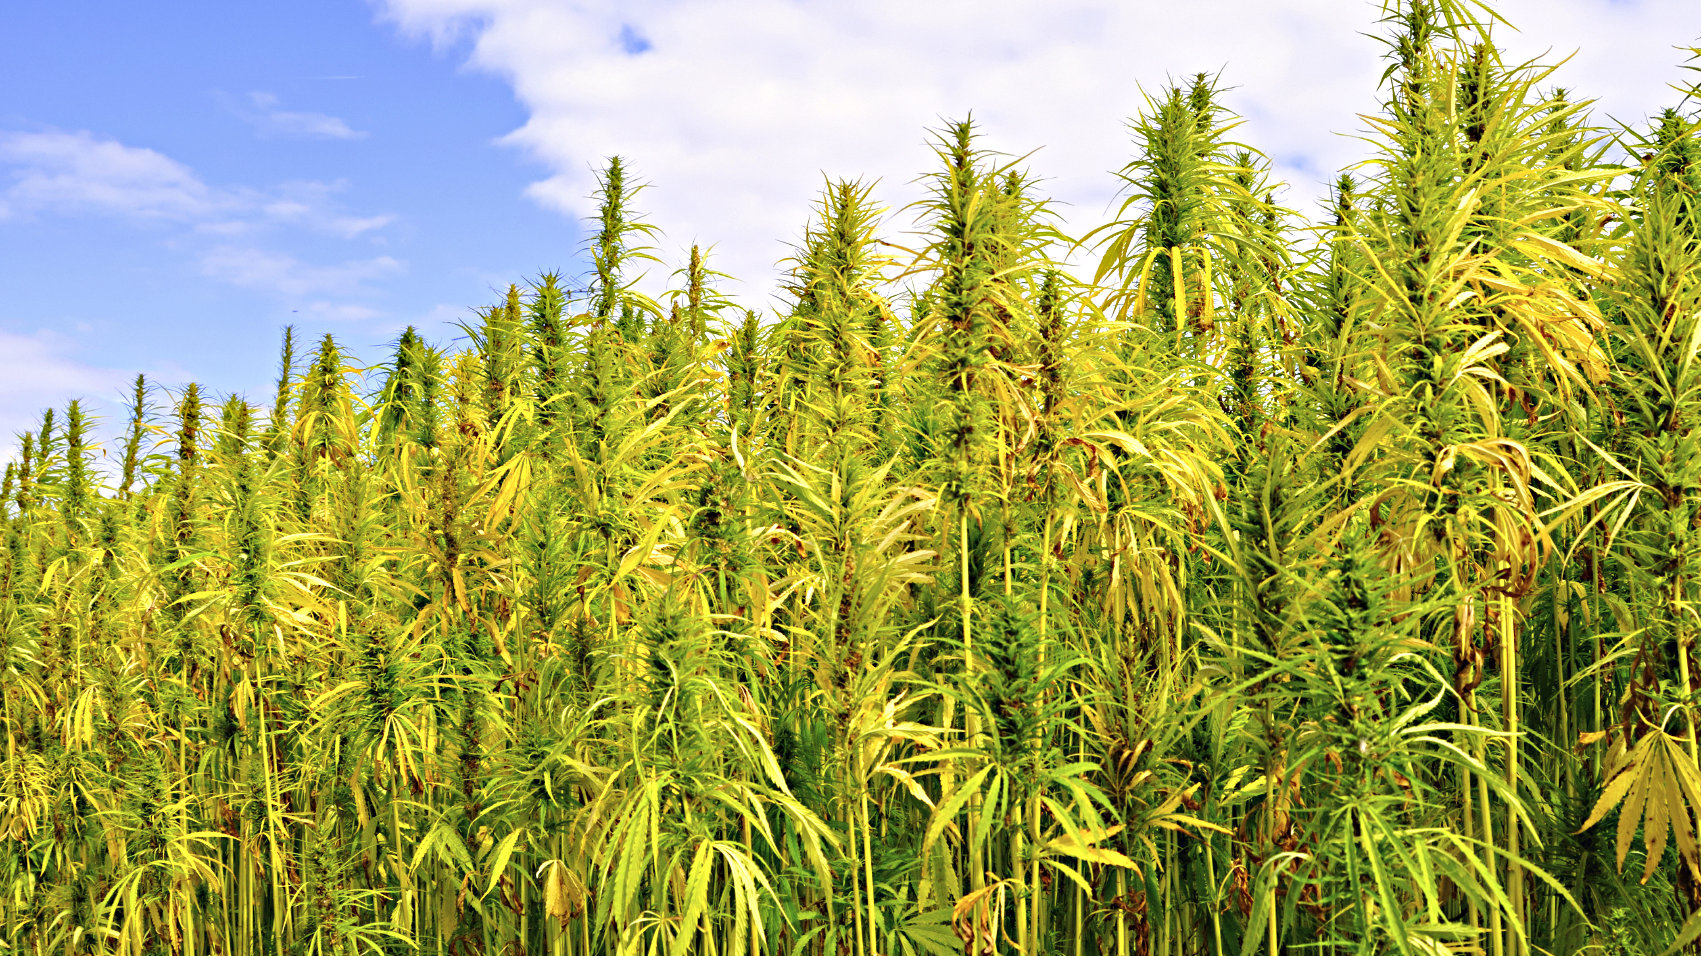 Photo: Hemp field from iStock